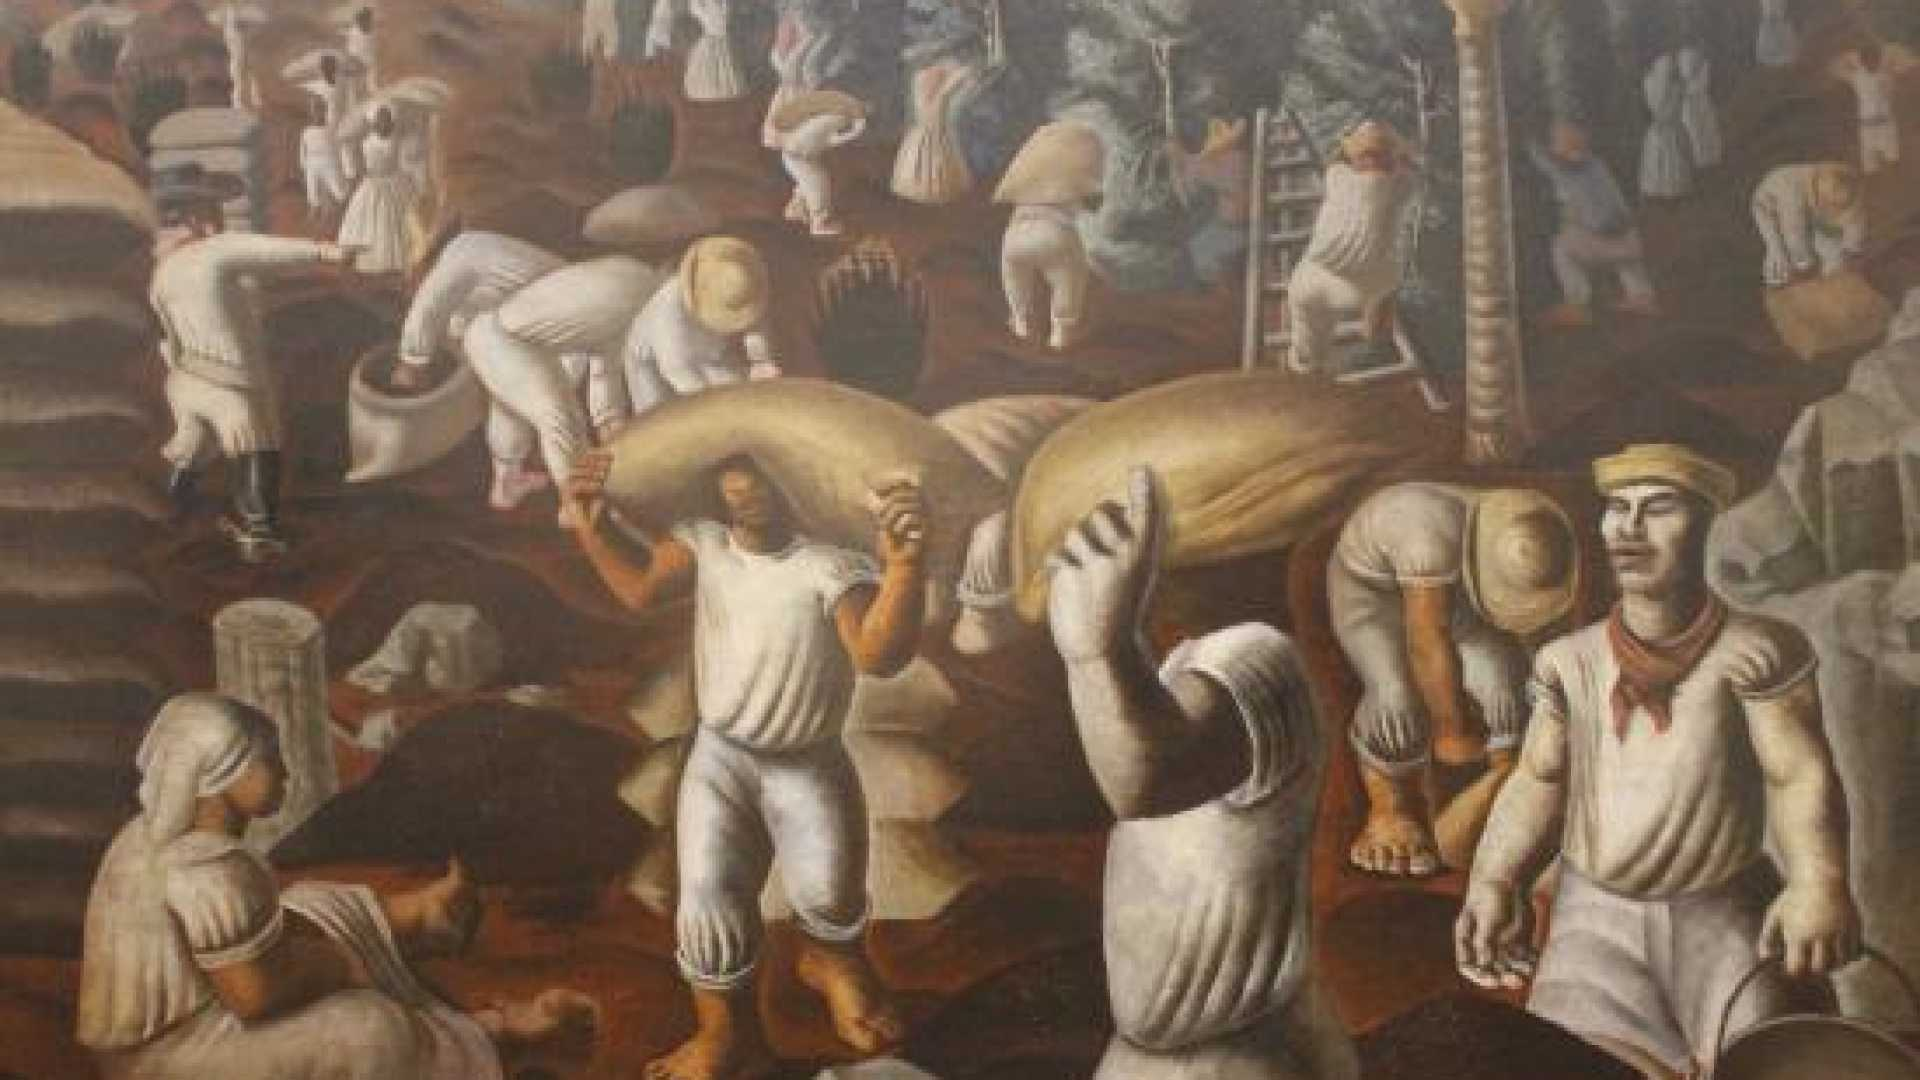 Photo of Portinari's mythical work 'Café' in the exhibition about the painter